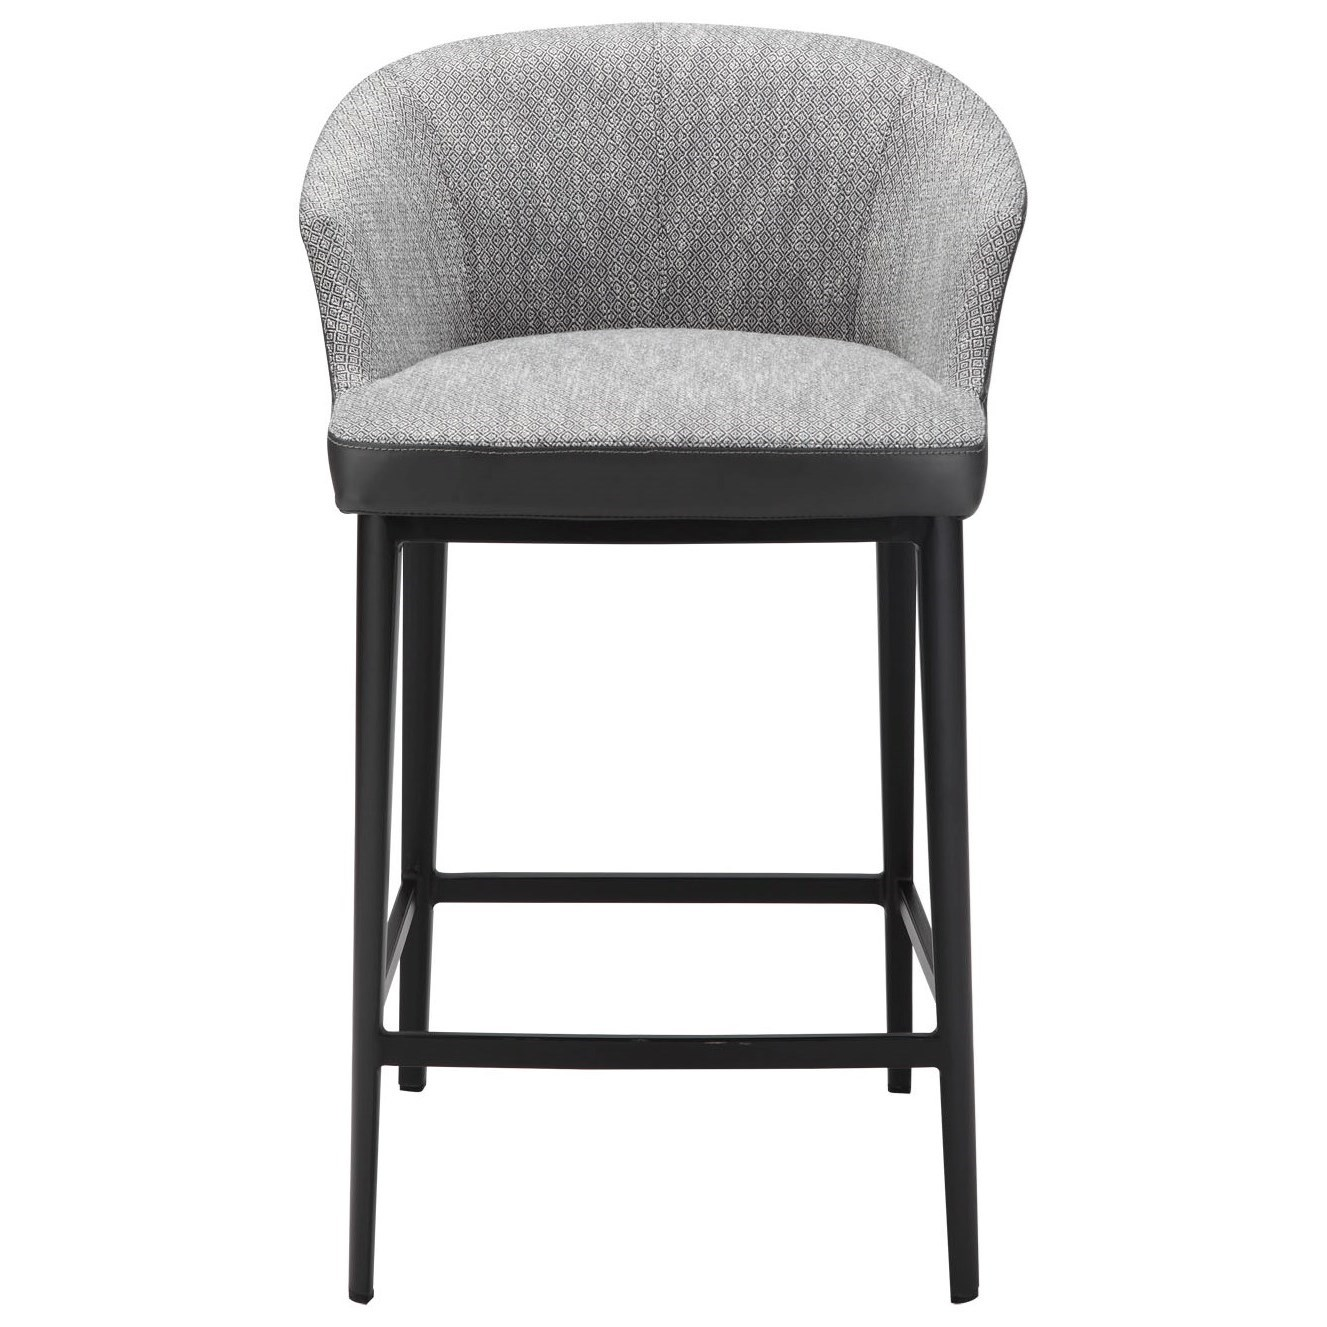 Beckett Counter Stool by Moe's Home Collection at Stoney Creek Furniture